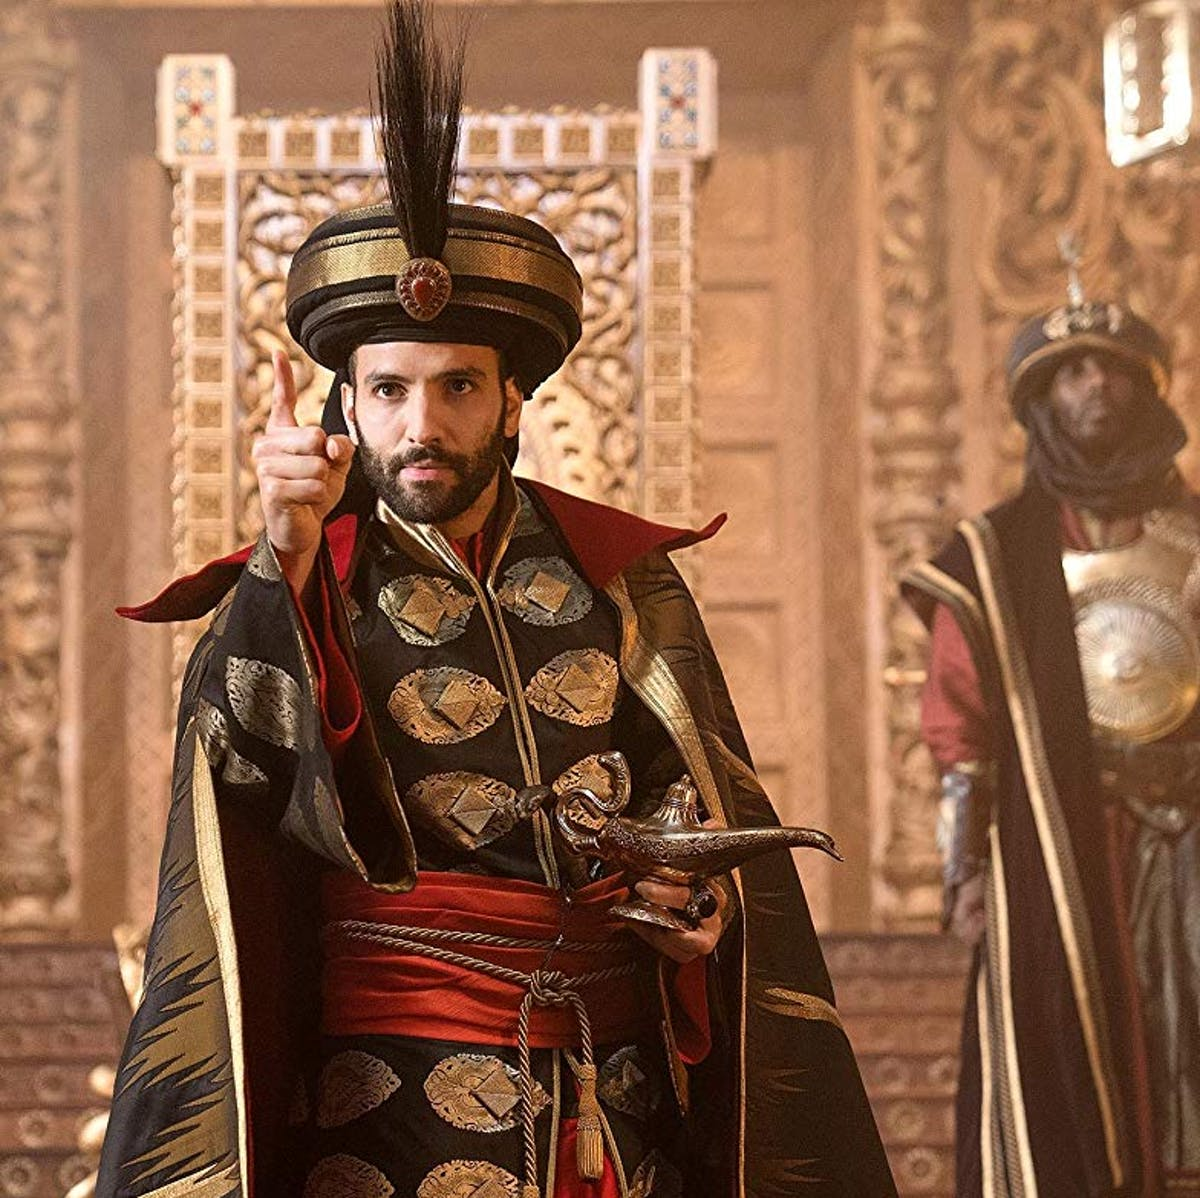 jafar in the new aladdin movie